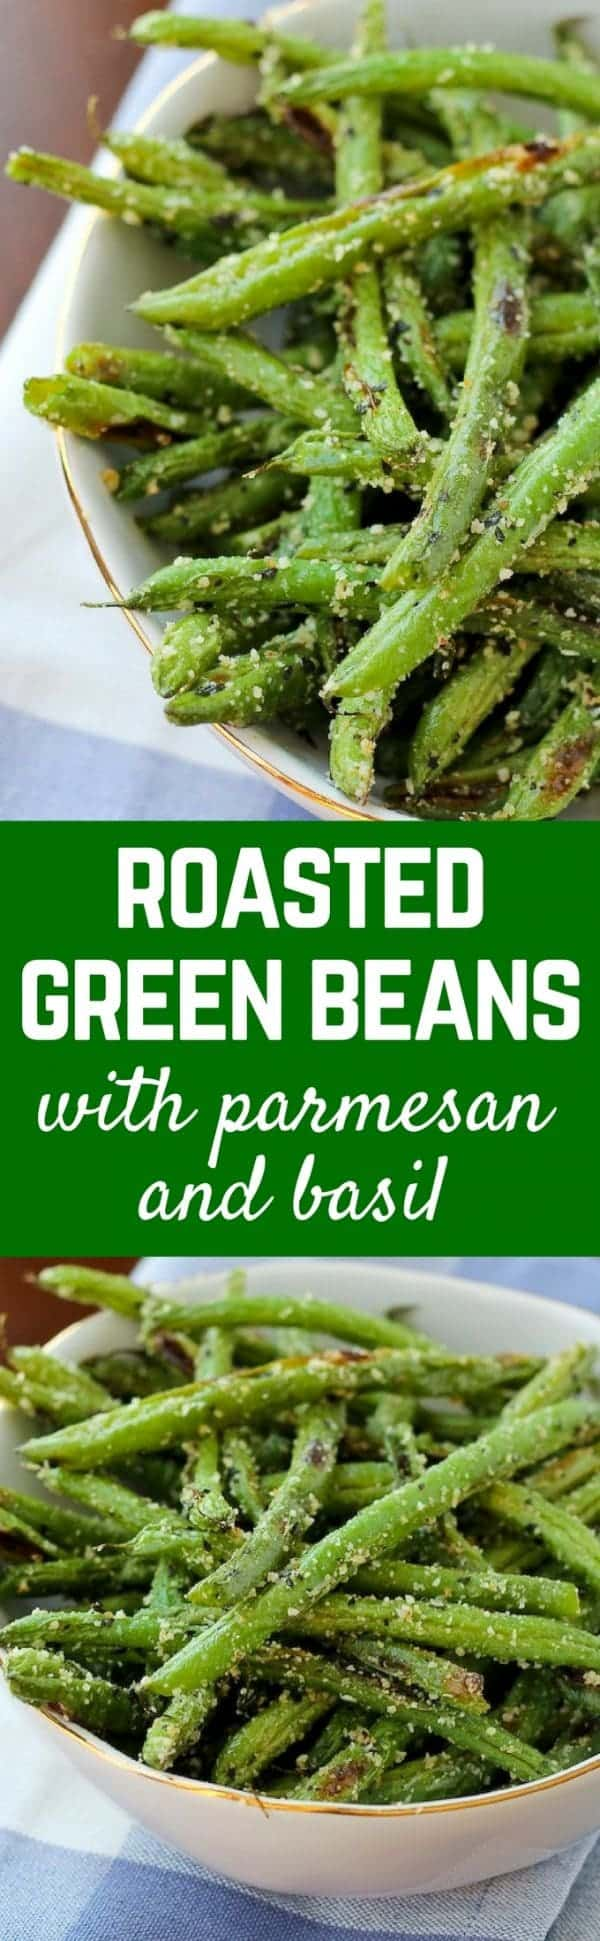 These roasted green beans with parmesan and basil are crispy, flavorful and probably don't even require a trip to the store -- just open your pantry and fridge! Get the recipe on RachelCooks.com!